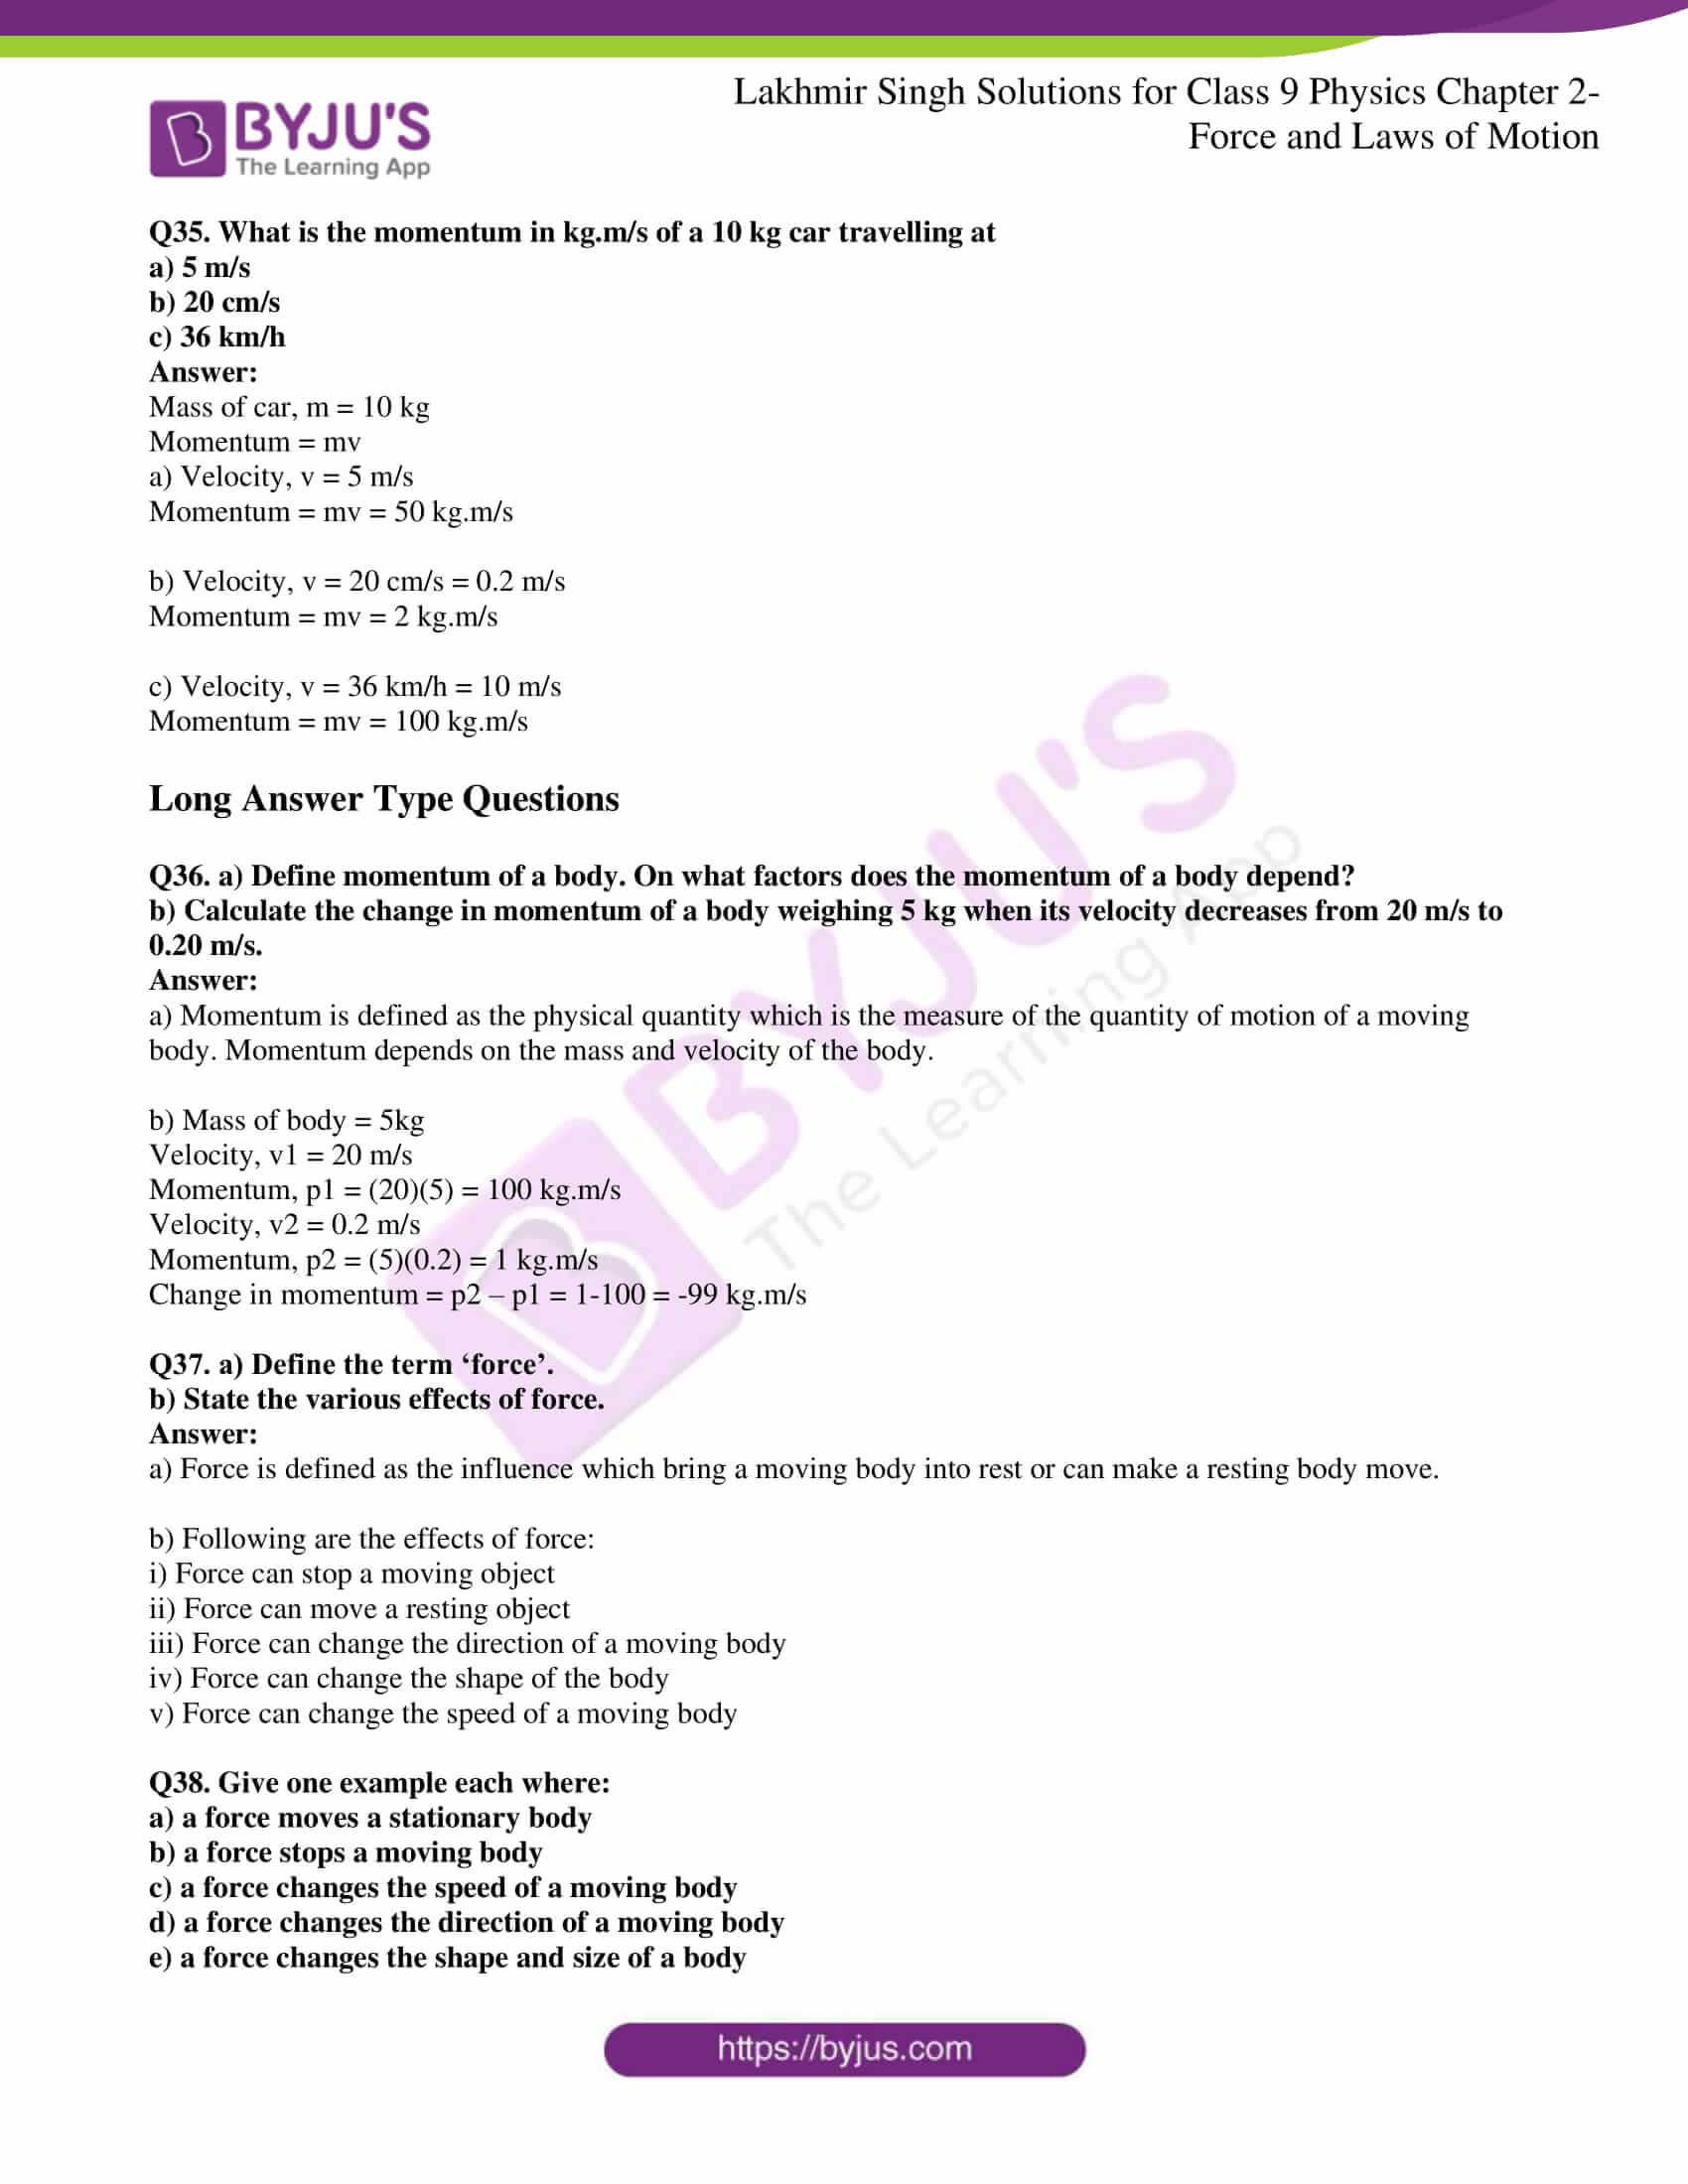 lakhmir singh solutions class 9 physics chapter 2 05